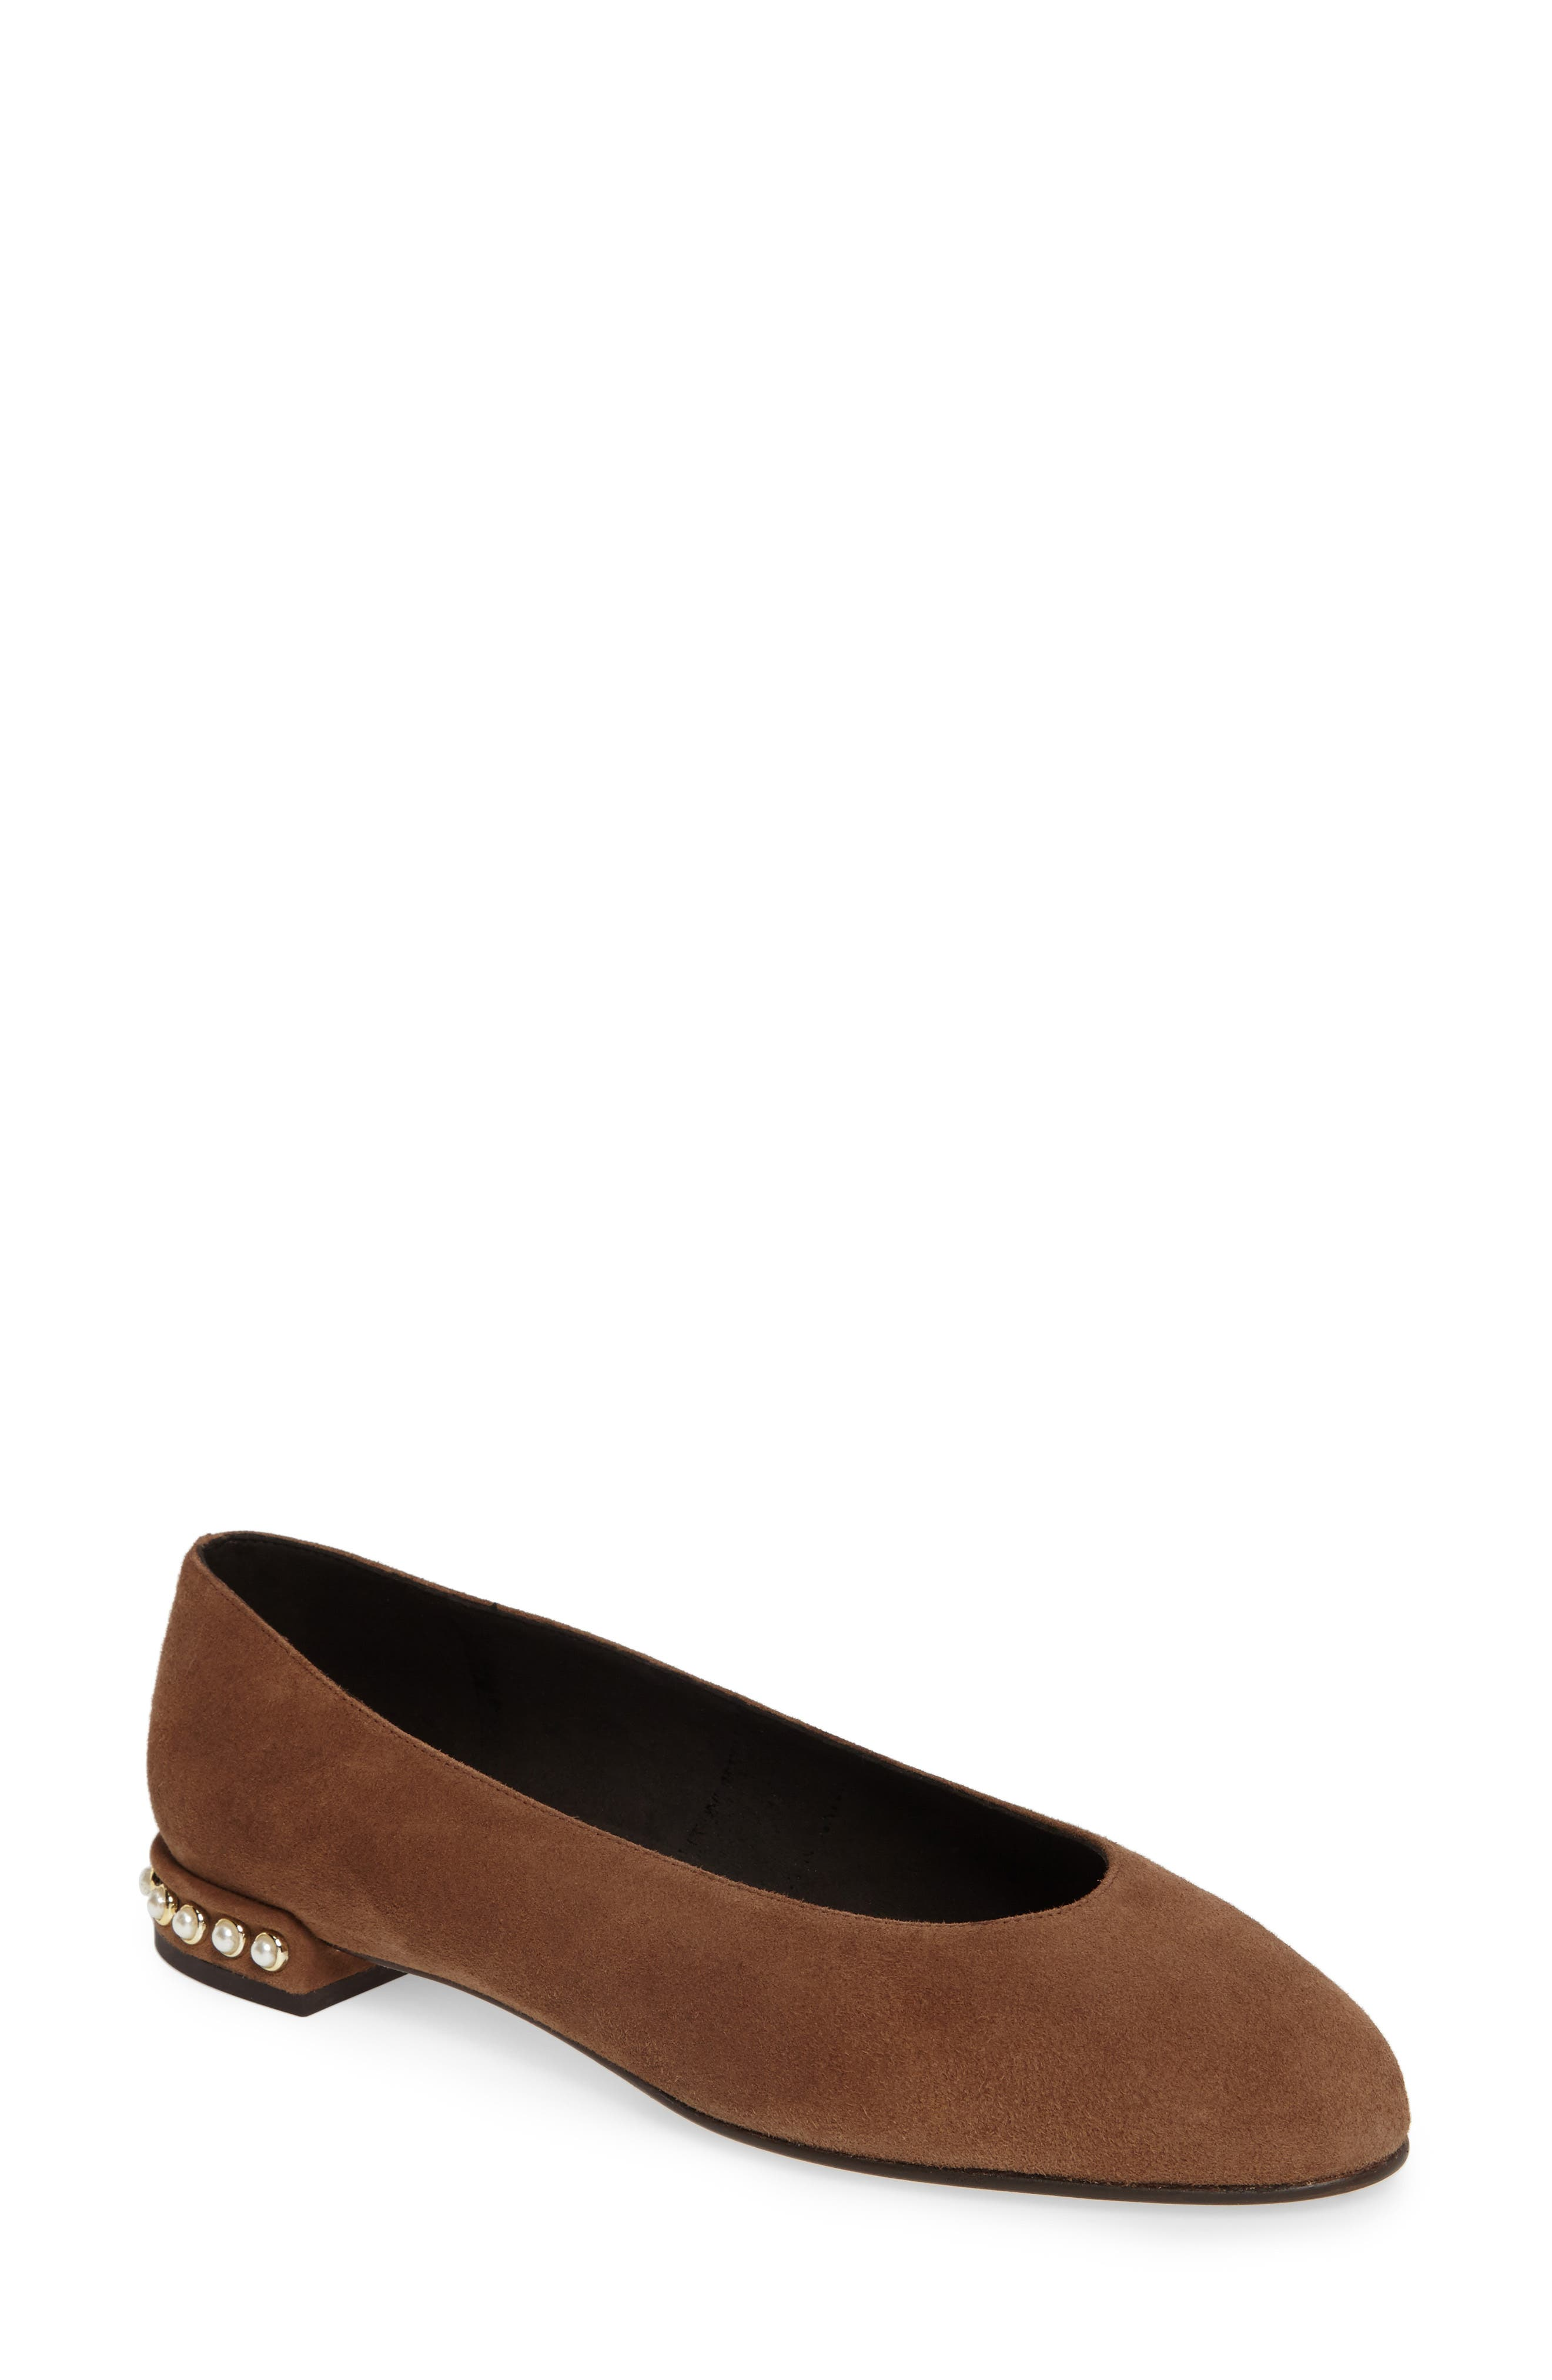 Chicpearl Ballet Flat,                         Main,                         color, Nutmeg Suede